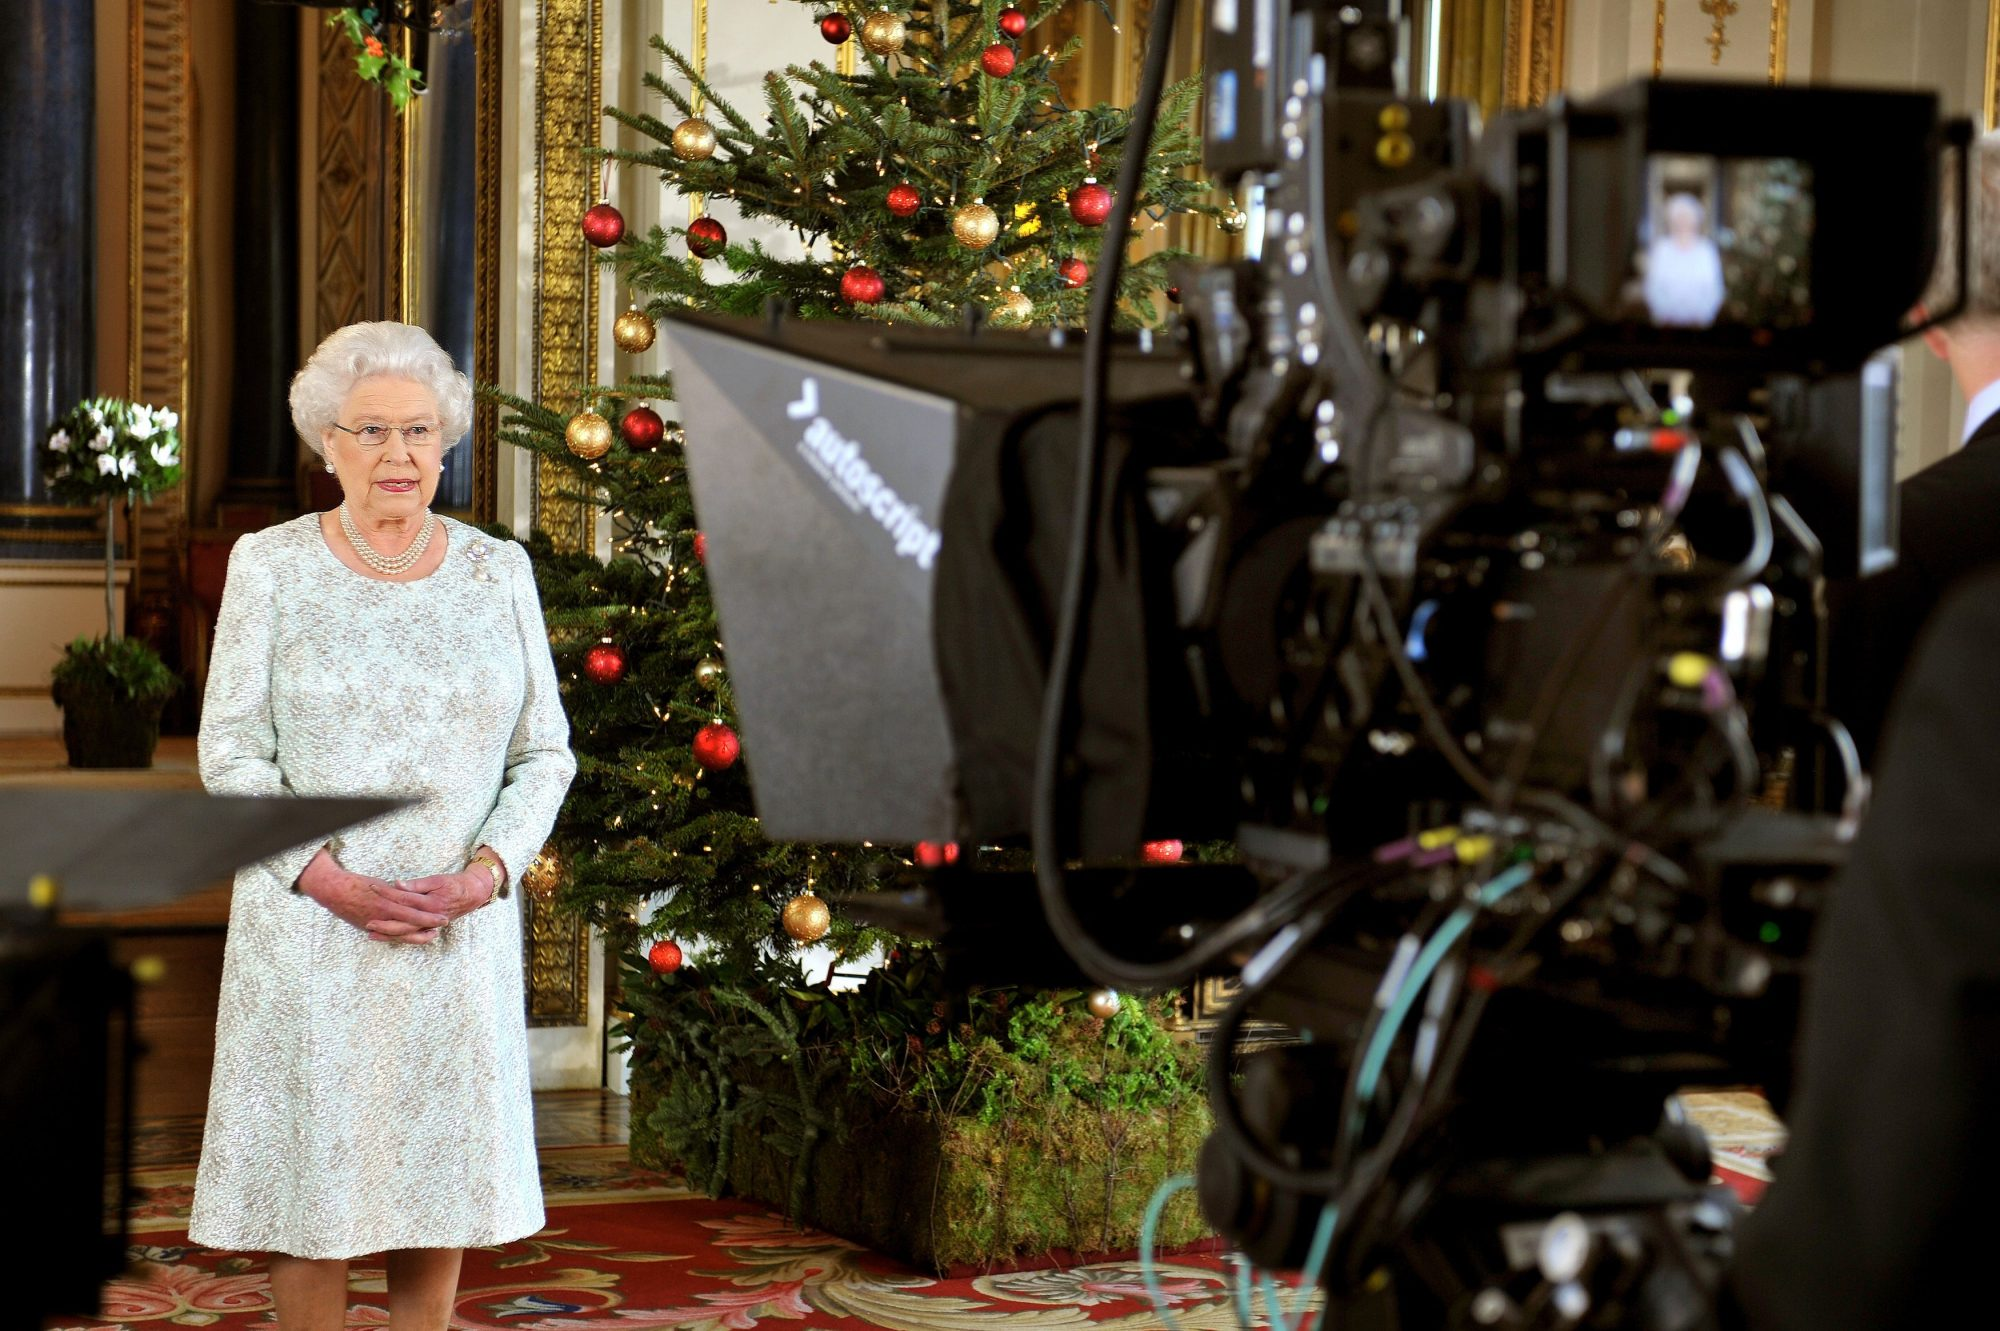 The Queen's 2012 Christmas Broadcast